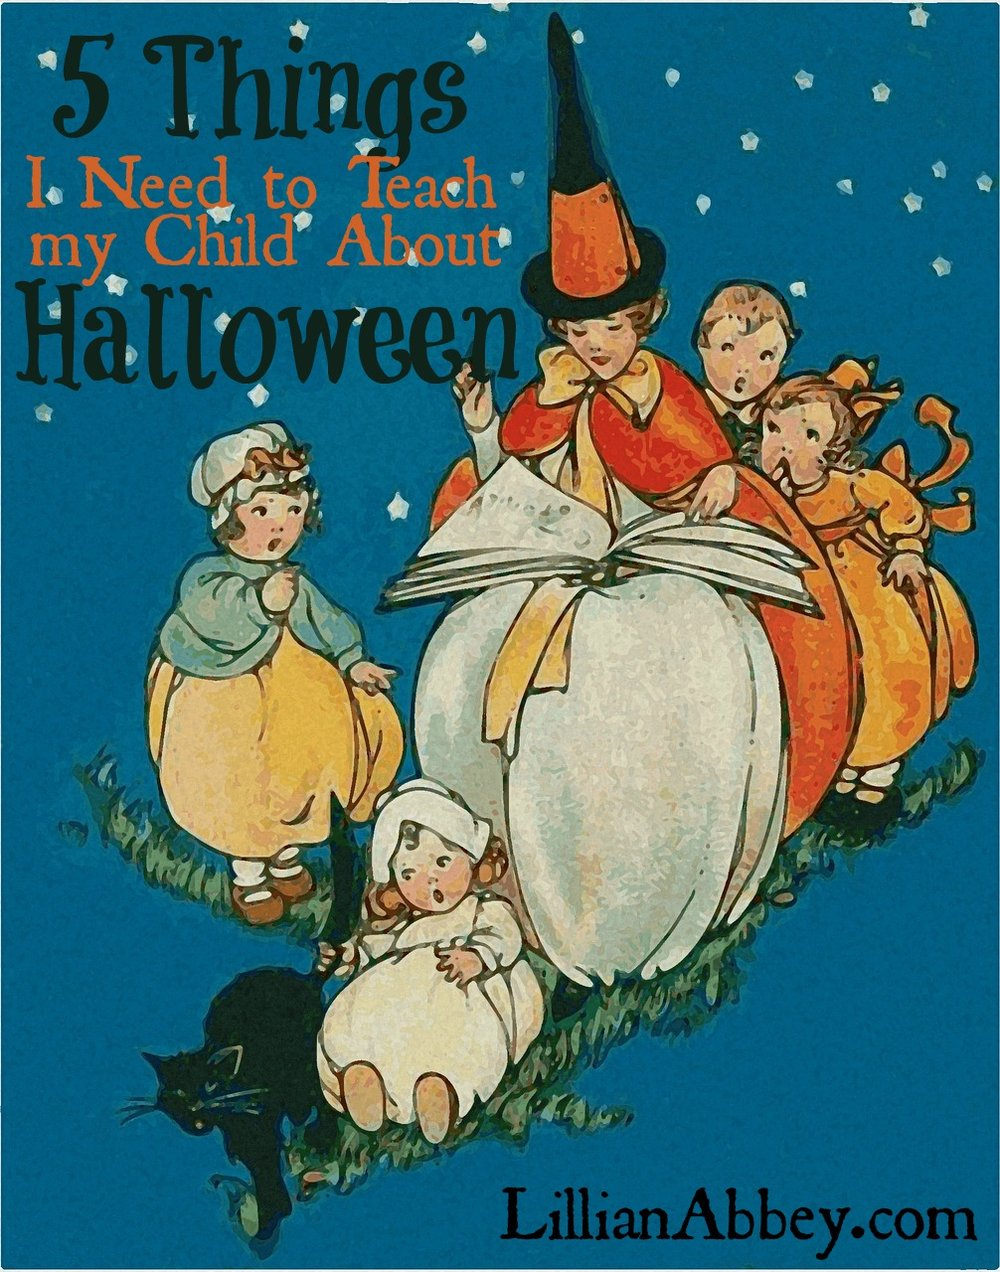 5 things to teach child halloween